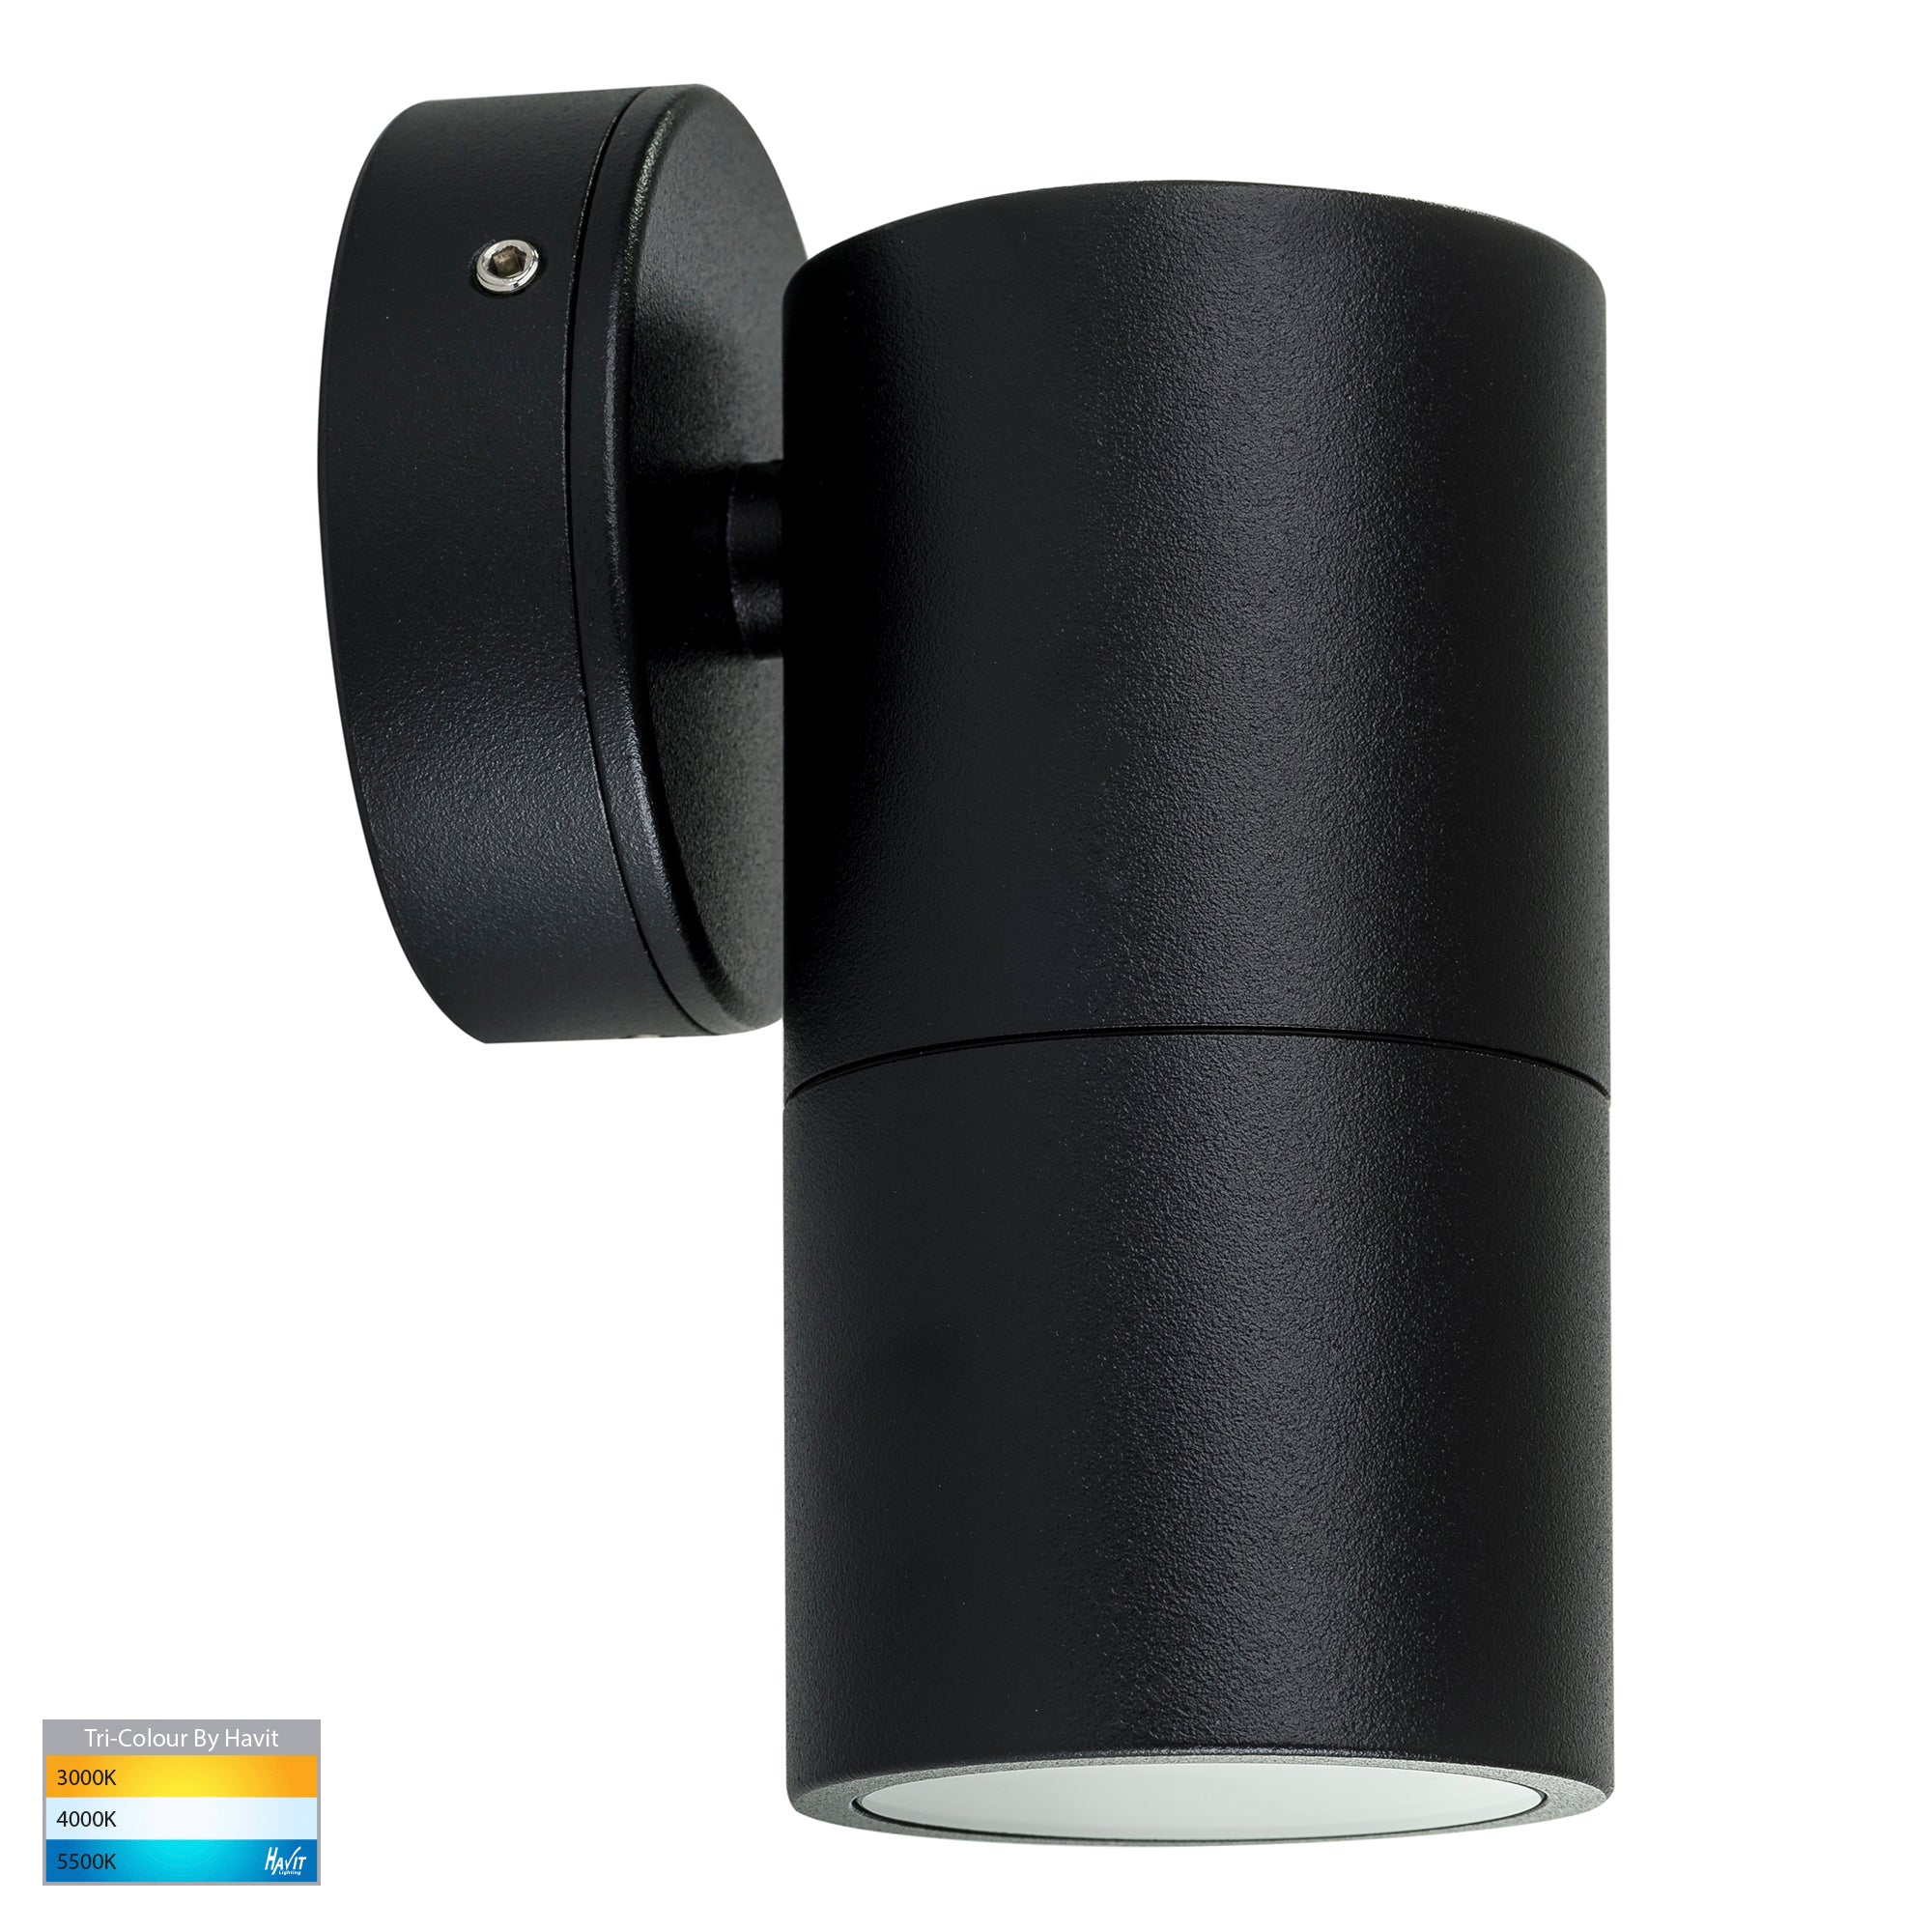 HV1125T-HV1127T - Tivah Black TRI Colour Fixed Down Wall Pillar Lights